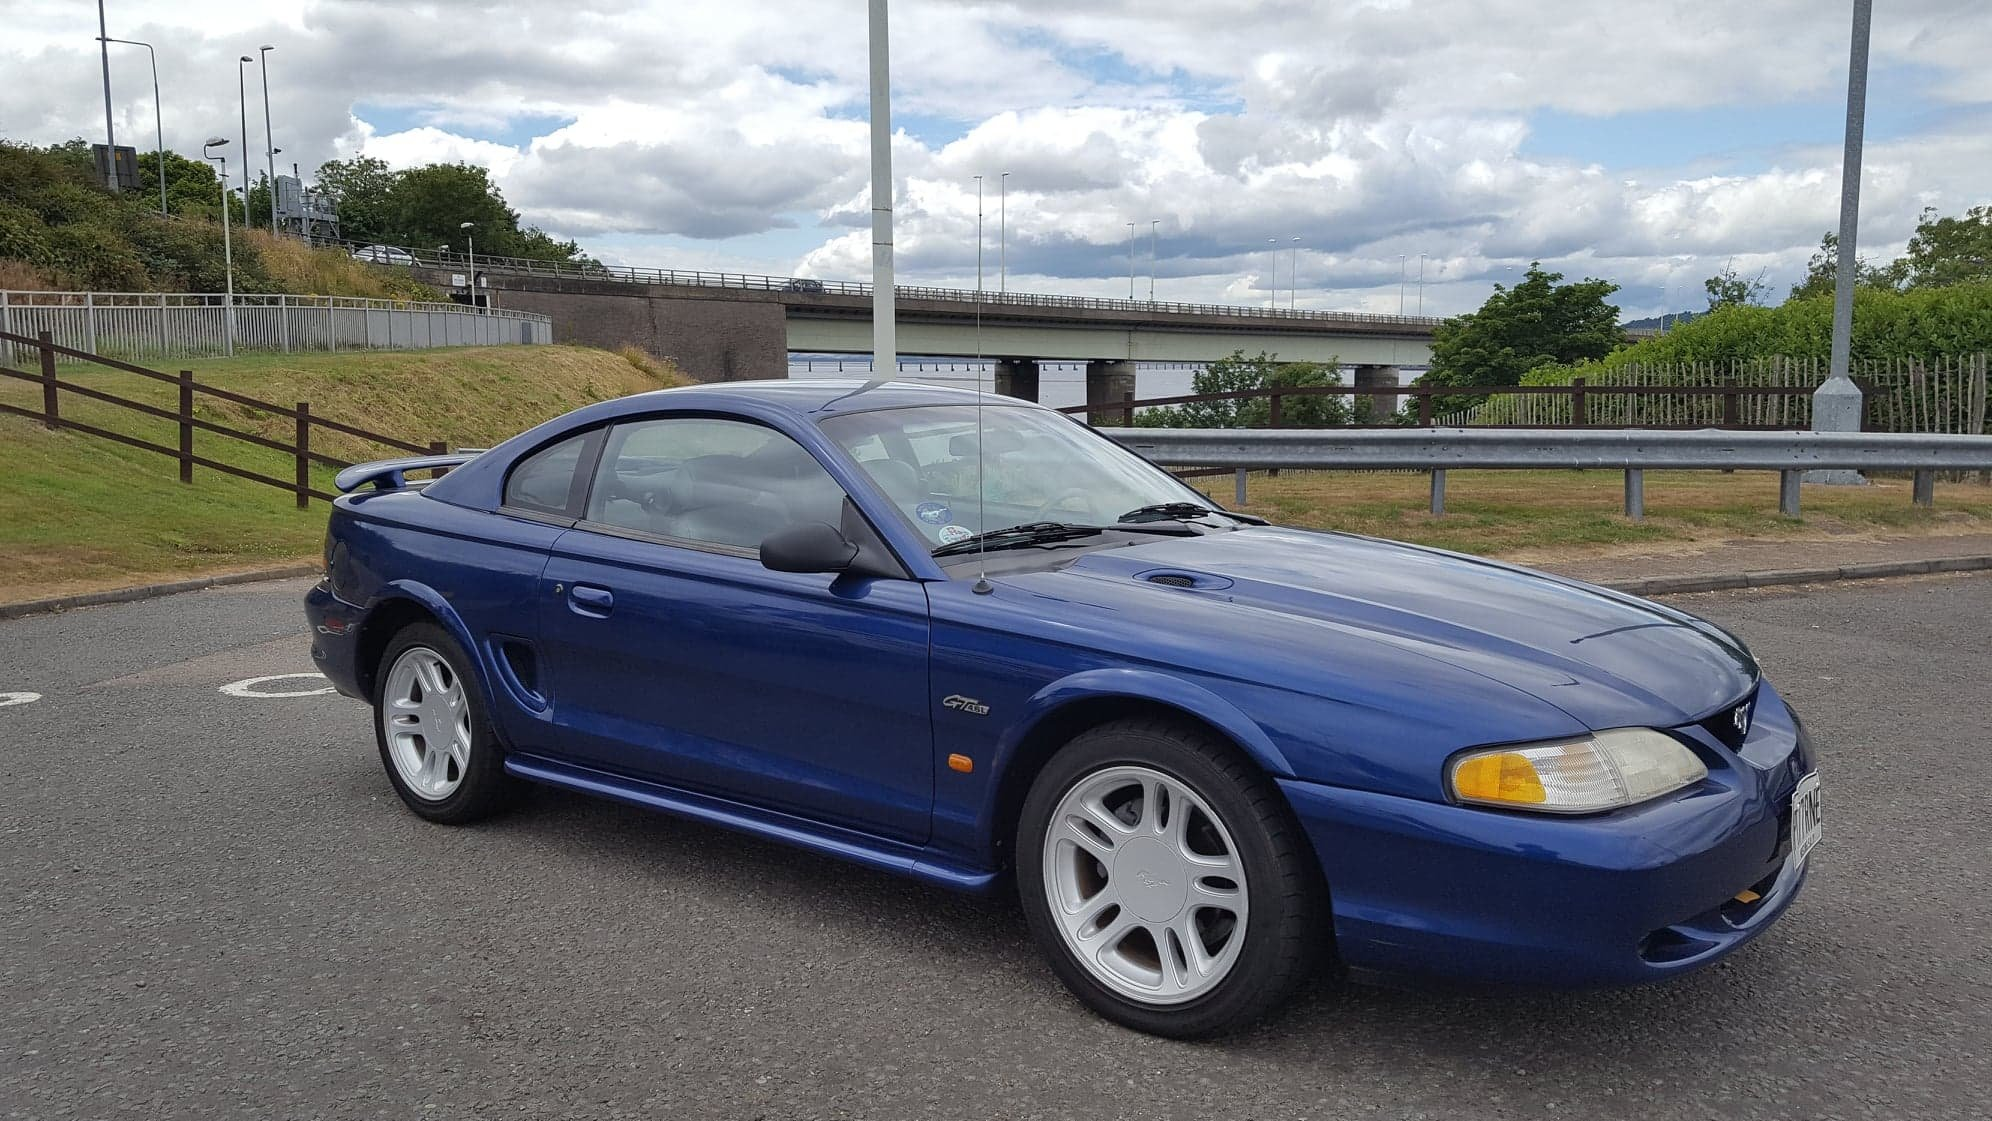 1996 Ford Mustang GT v8  For Sale (picture 1 of 2)